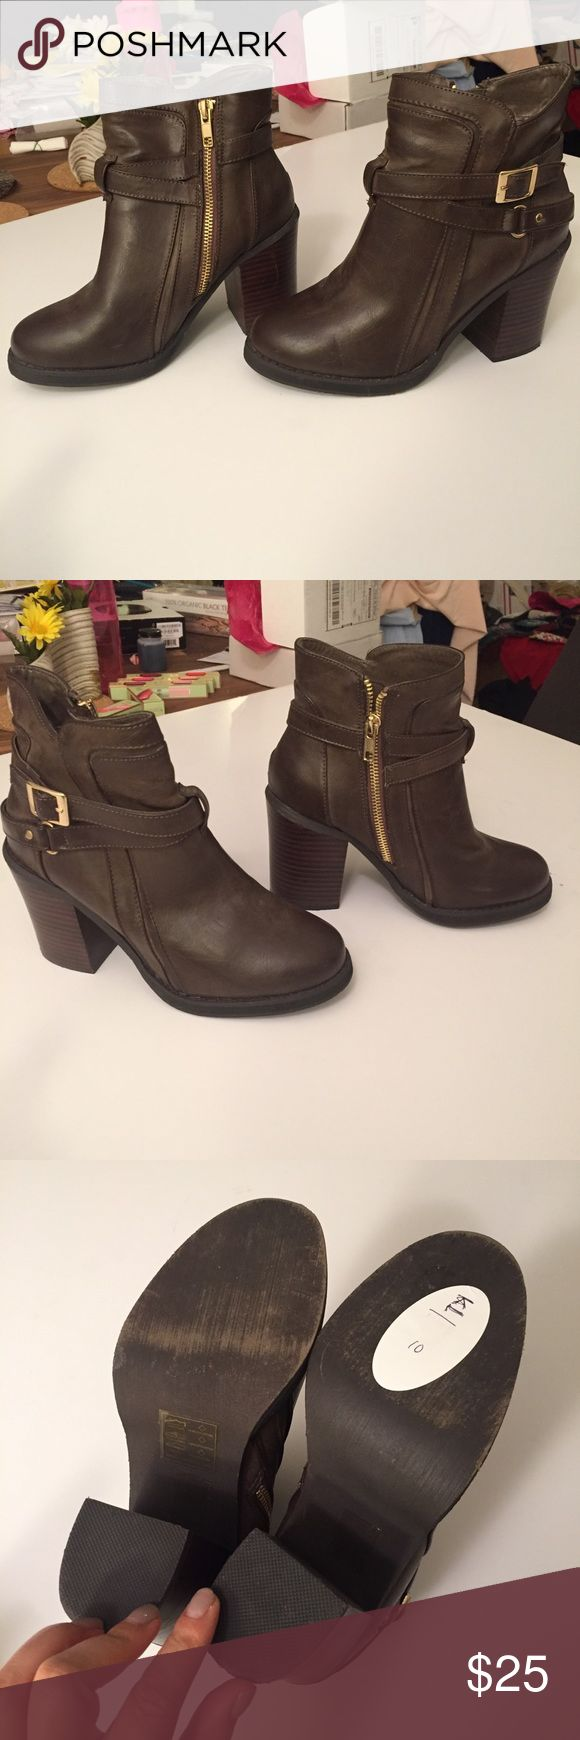 Forever 21 brown faux leather boots-7 On good condition, only flaw is scratch on inner heel on one side.  From forever 21. Tags: mura, tiger mist, showpo, sabo skirt, white fox, missguided, h and m, hello Molly, Stelly, hot Miami styles, fashion nova, princess Polly, verge girl, pop cherry, forever 21, Nordstrom, revolve Forever 21 Shoes Ankle Boots & Booties